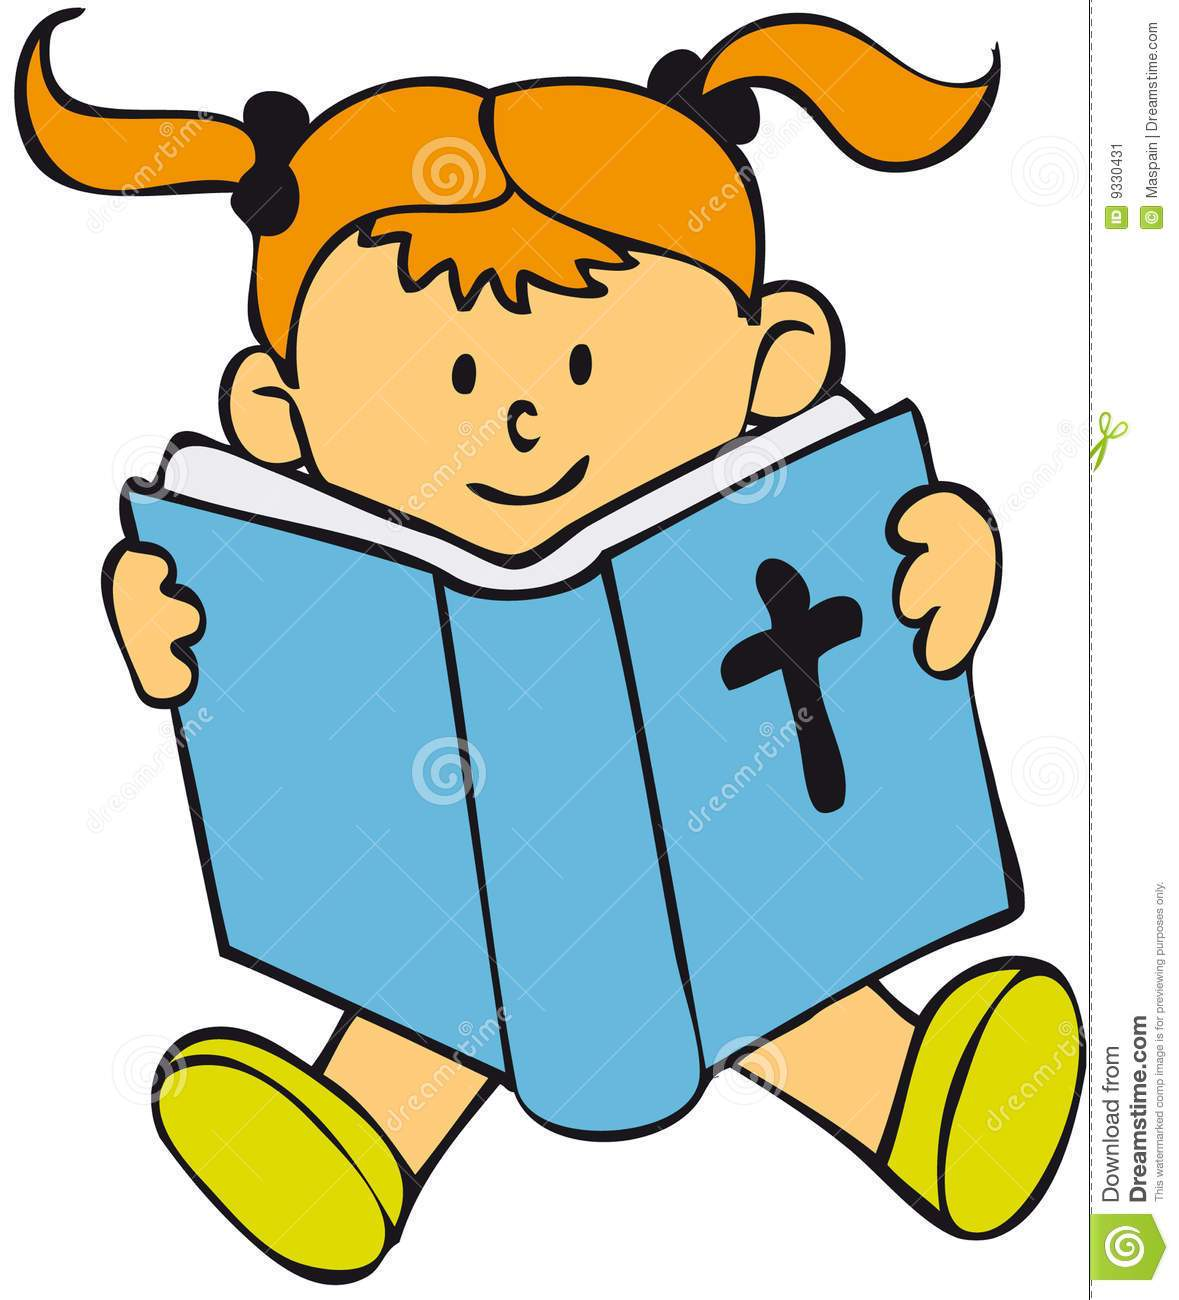 Kids reading the bible clipart 3 » Clipart Portal.